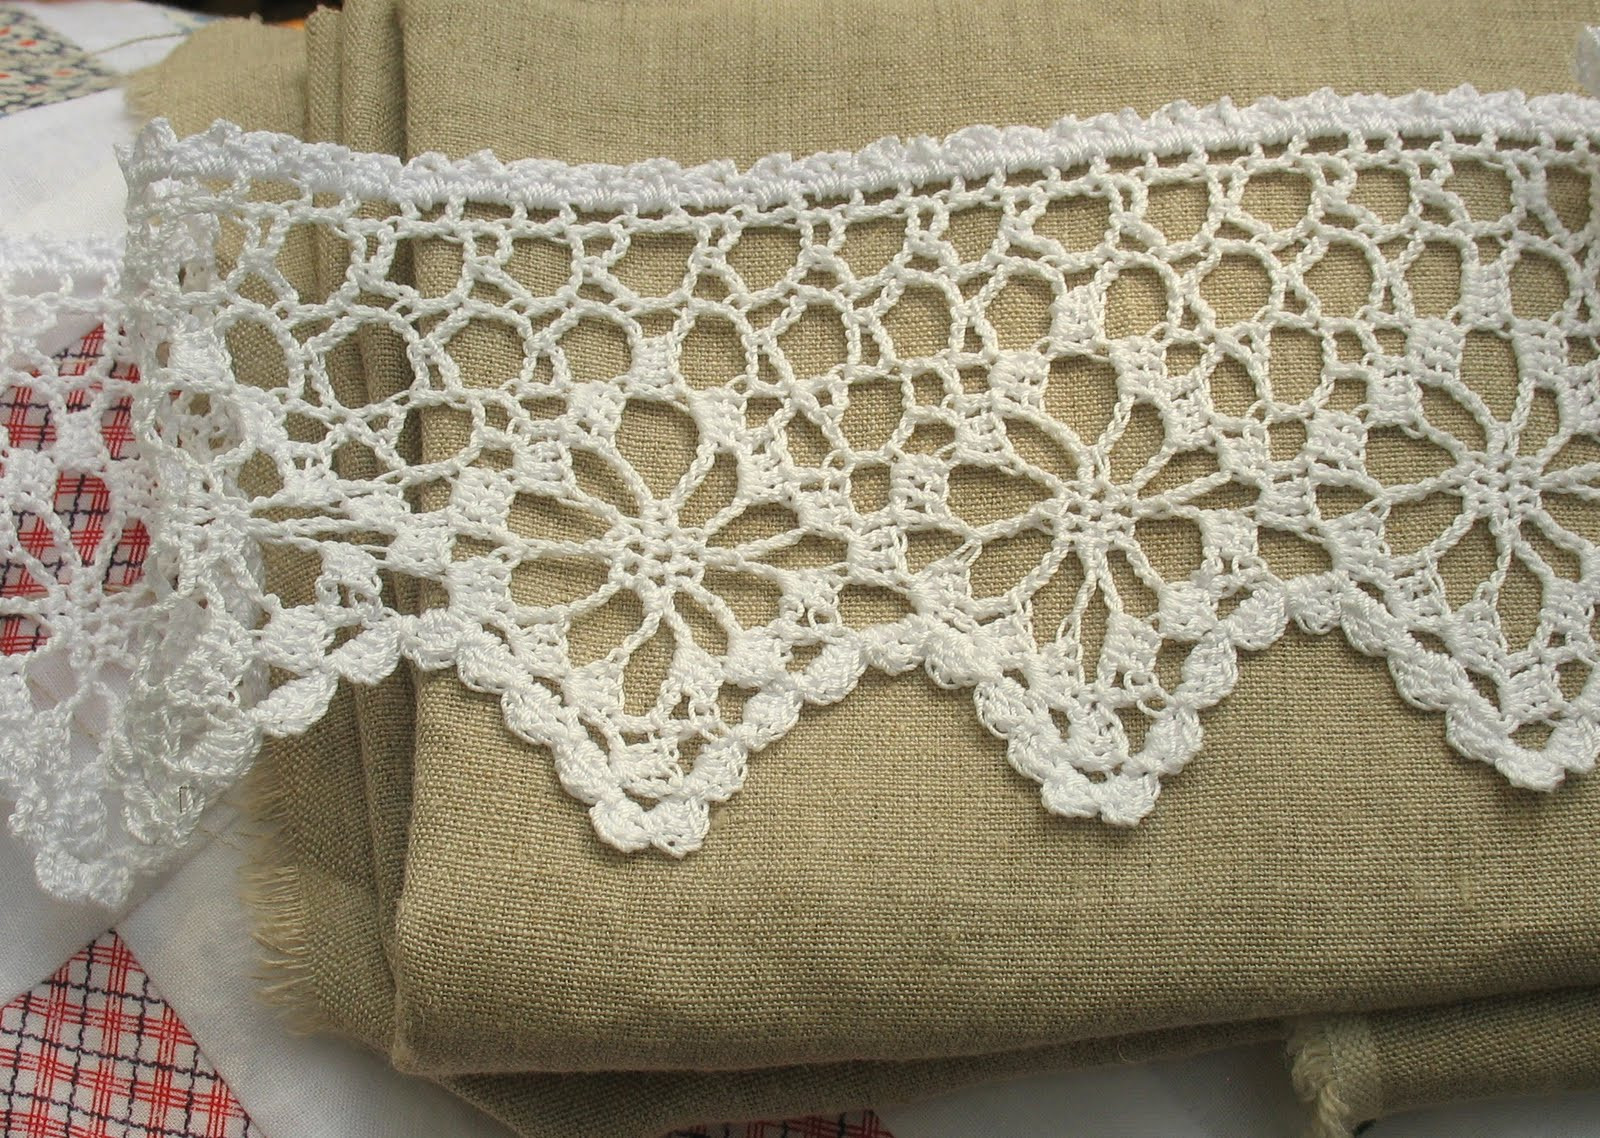 Beautiful Amy Brumley Crocheted Lace Curtains Crochet Lace Edging Pattern Of Amazing 40 Photos Crochet Lace Edging Pattern